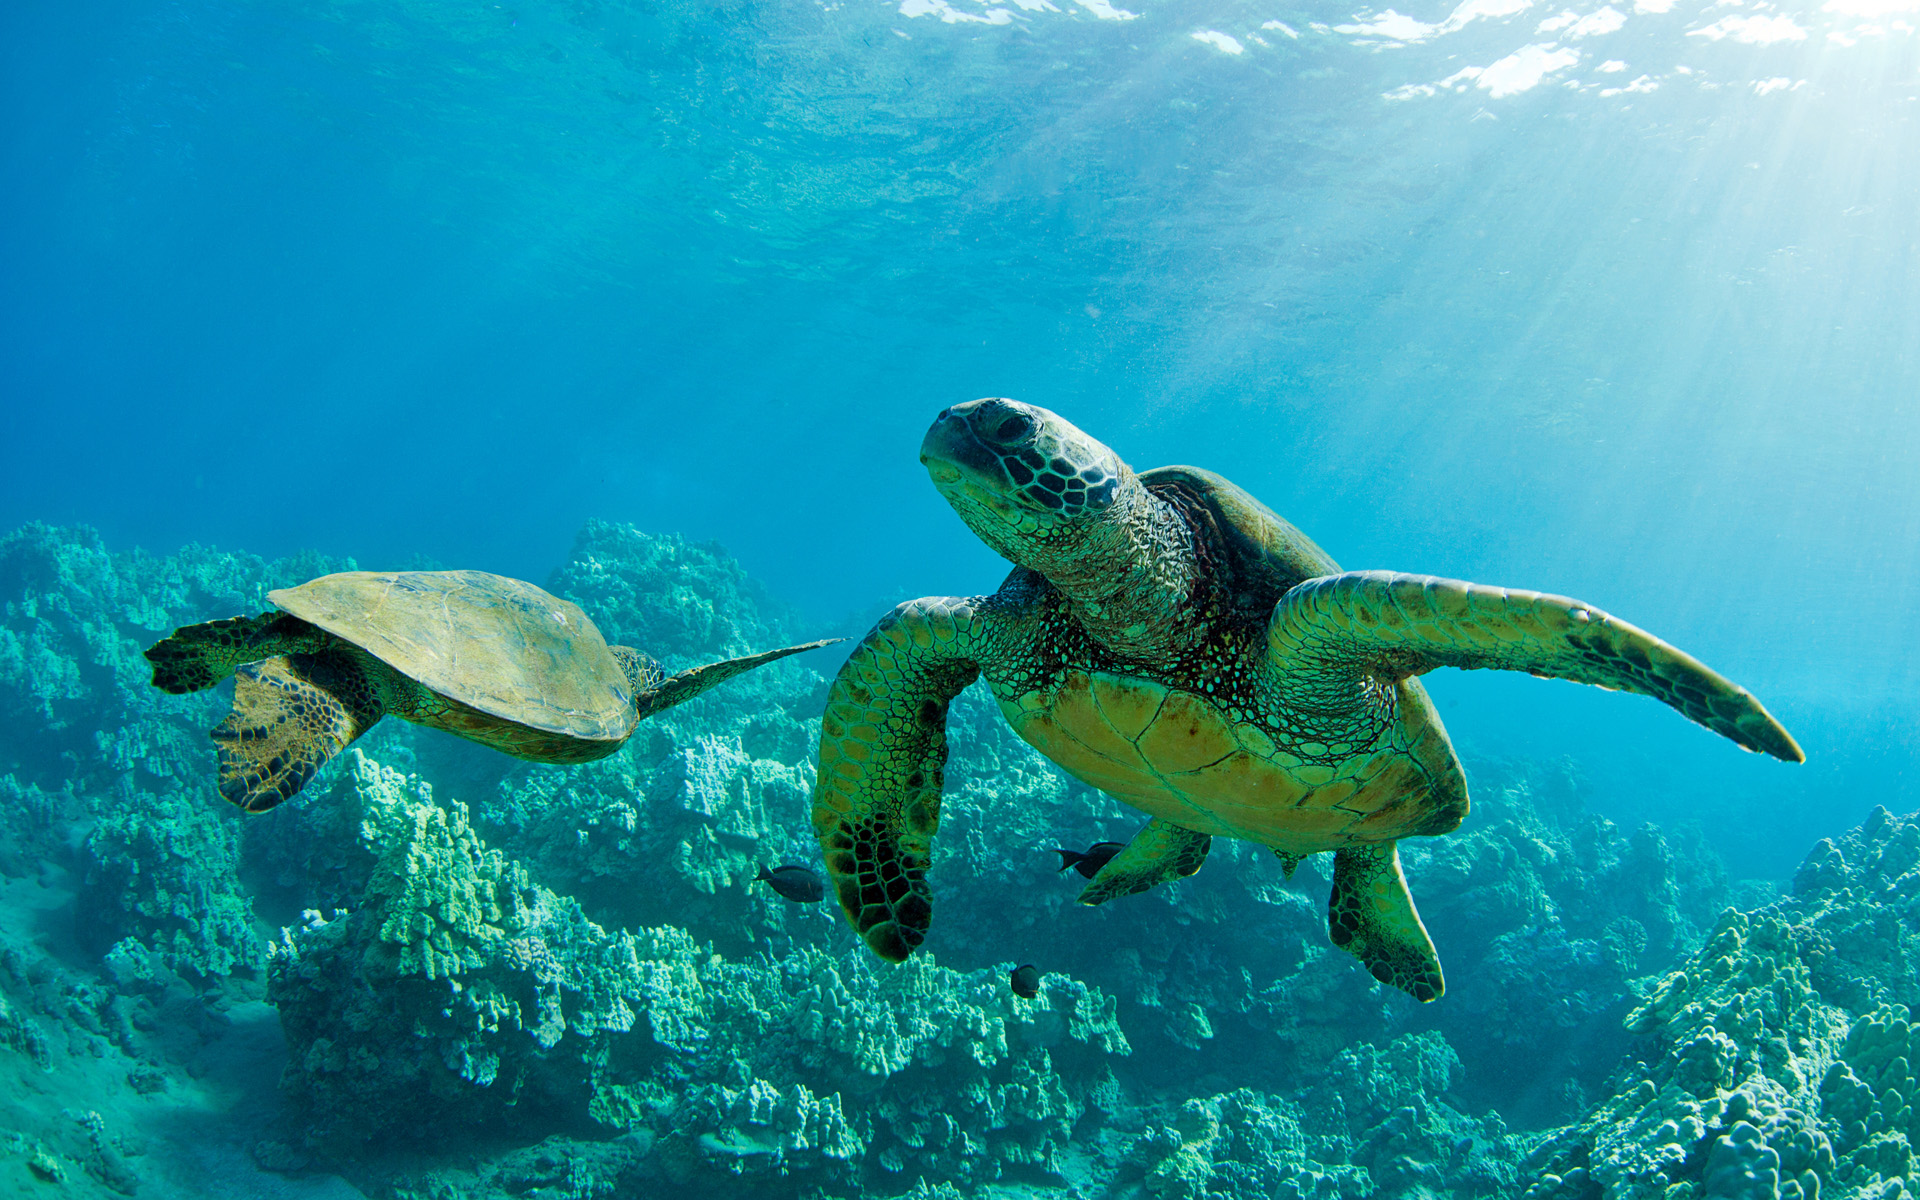 Sea Turtles together underwater over coral reef Maui HQ Wallpapers 1920x1200